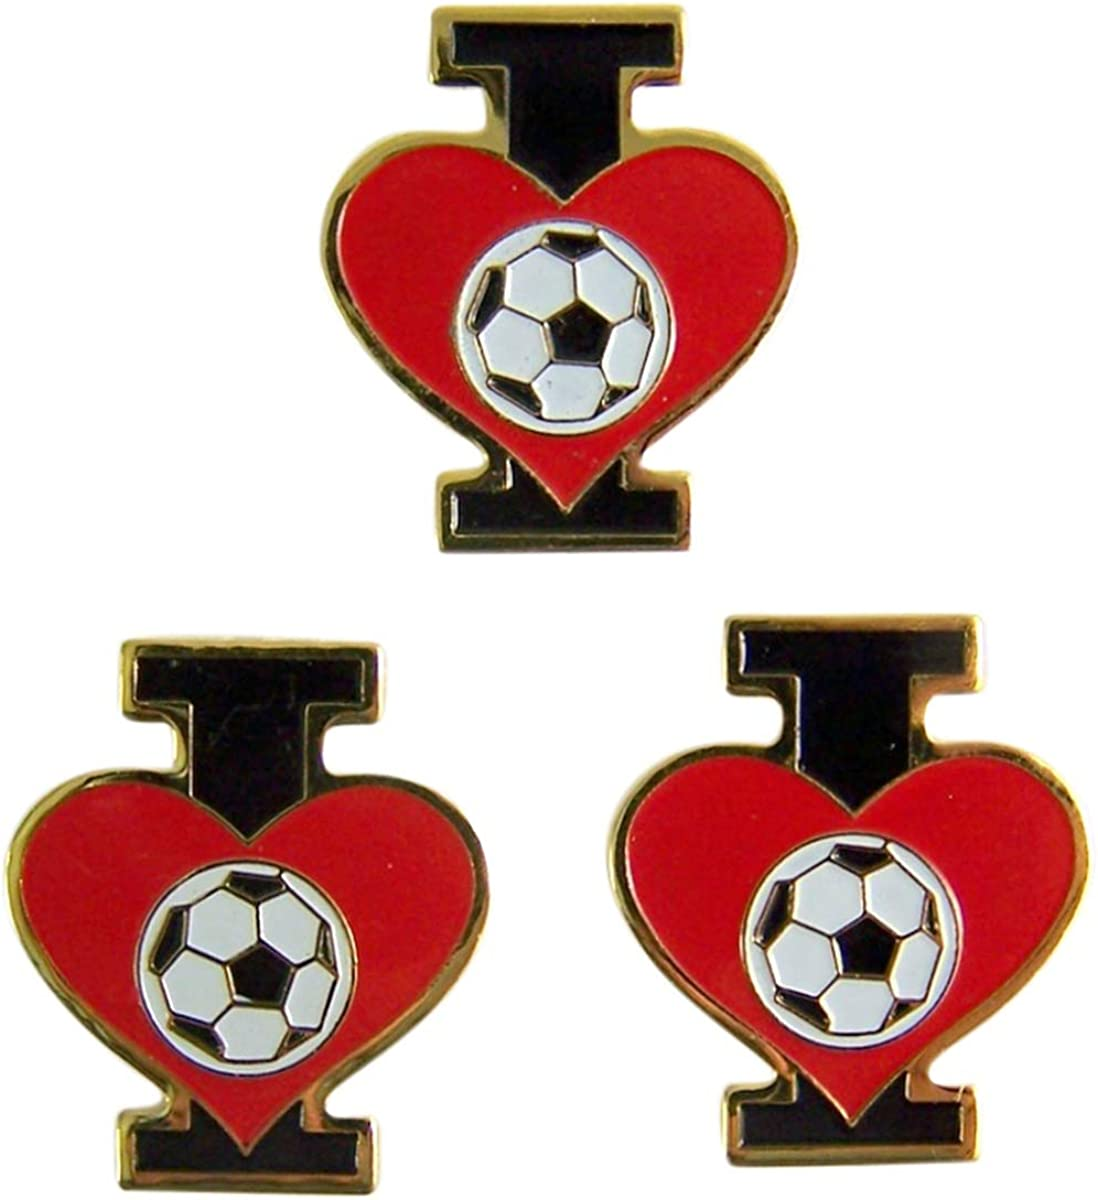 I Love Soccer Heart Lapel Pins, 12/12 Inch, Pack of 12